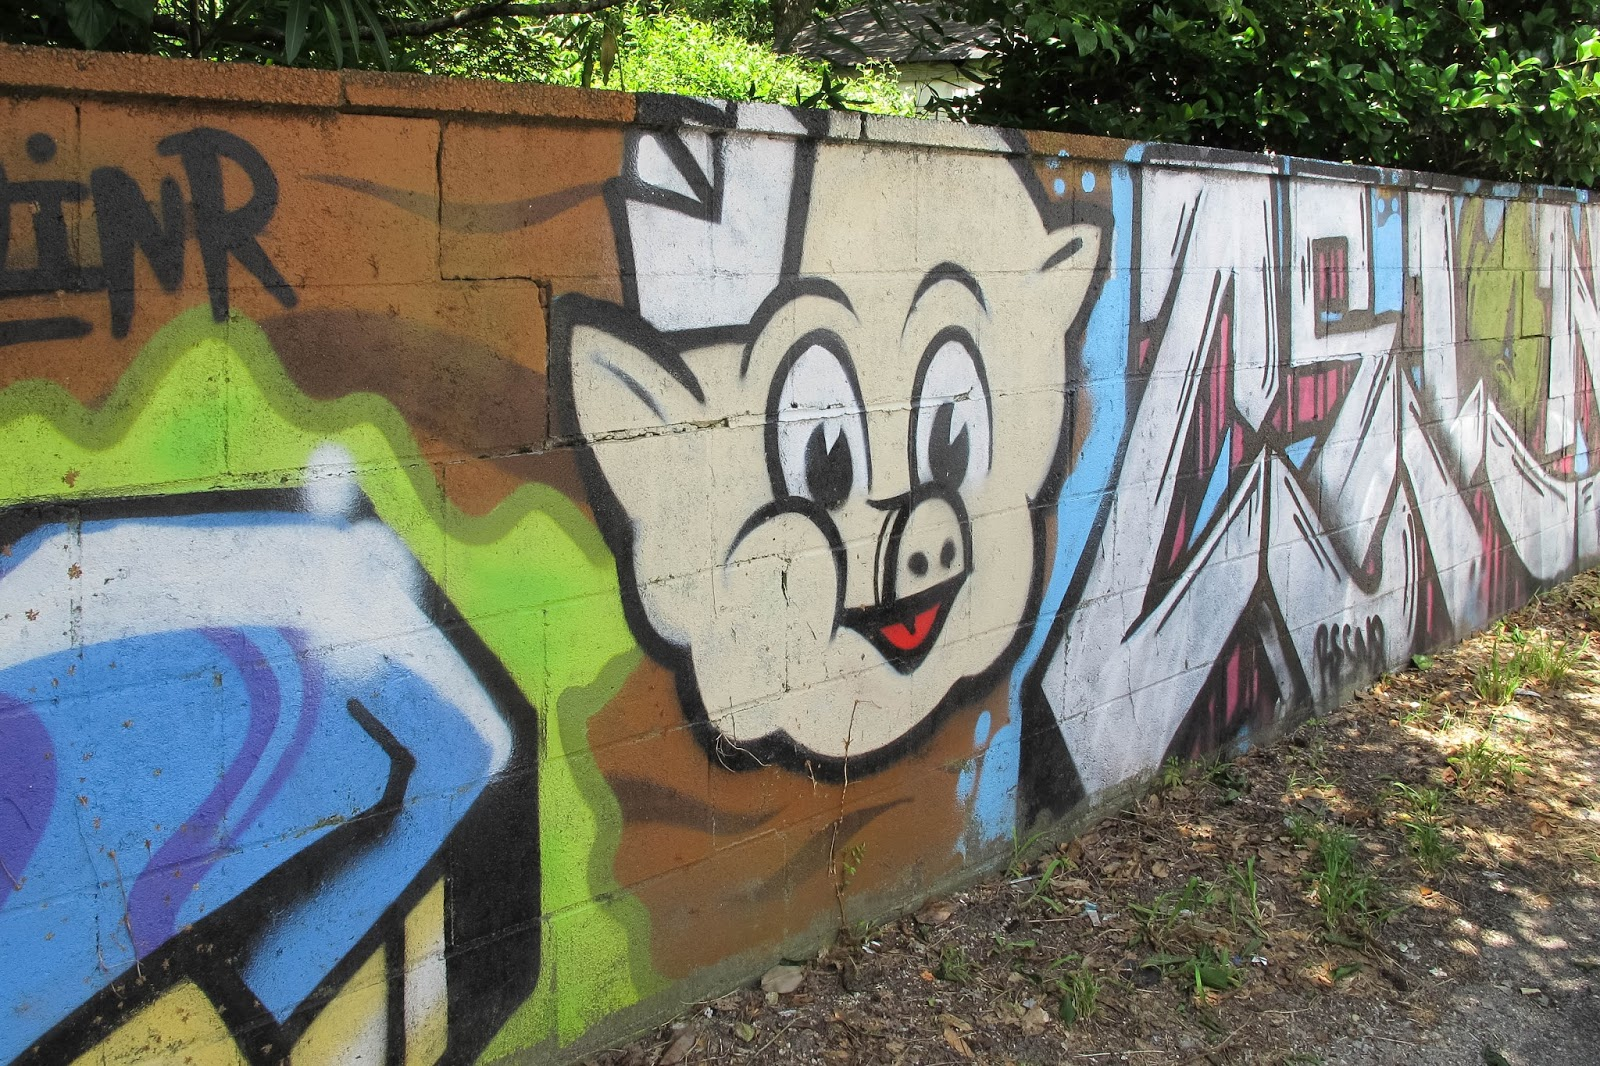 mural project Oakland super heroes mural project (osh) is a crucial community development effort led by amana harris, artist and executive director of attitudinal healing connection (ahc) in oakland the project will engage 300 youth to be change agents in their community the goal is to resolve issues that plague our city, create.